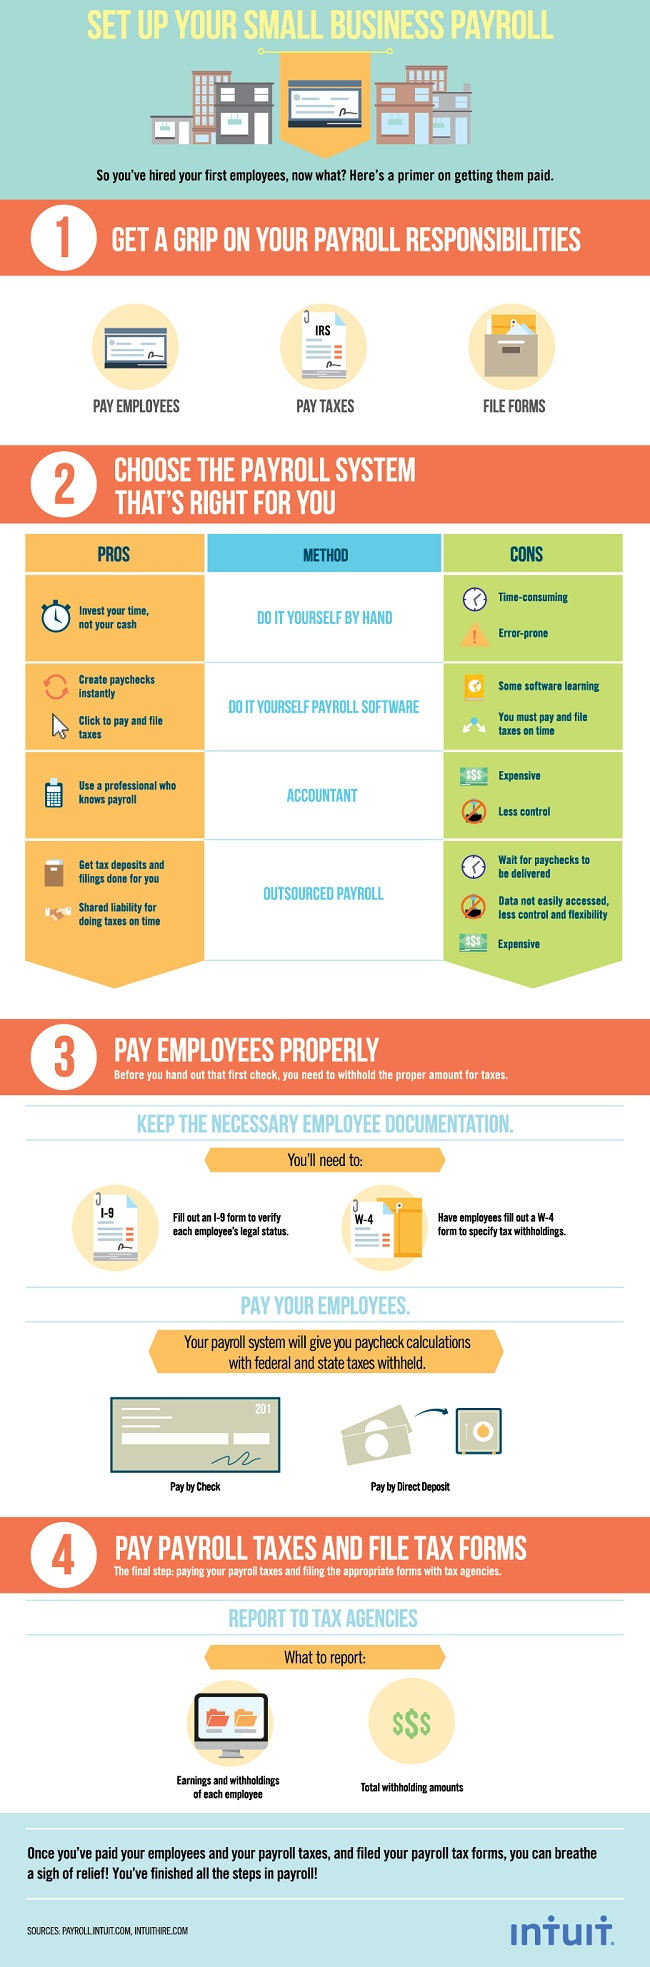 How To File Taxes Form 4 Steps To A Successful Small Business Payroll  Process